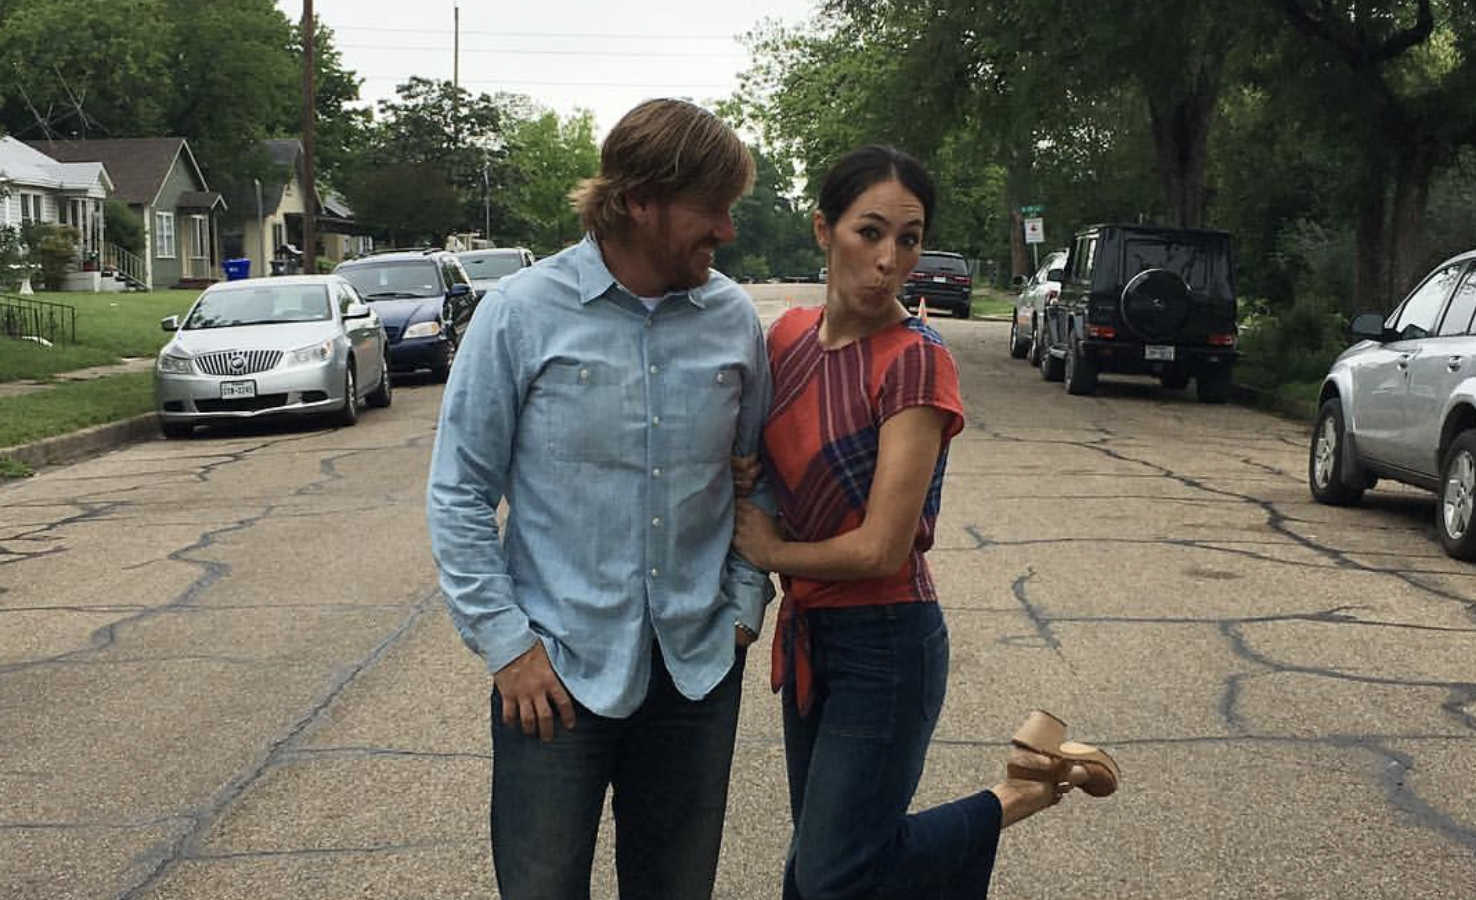 Joanna Gaines Asks Fans For Help After Rumor Spreads About